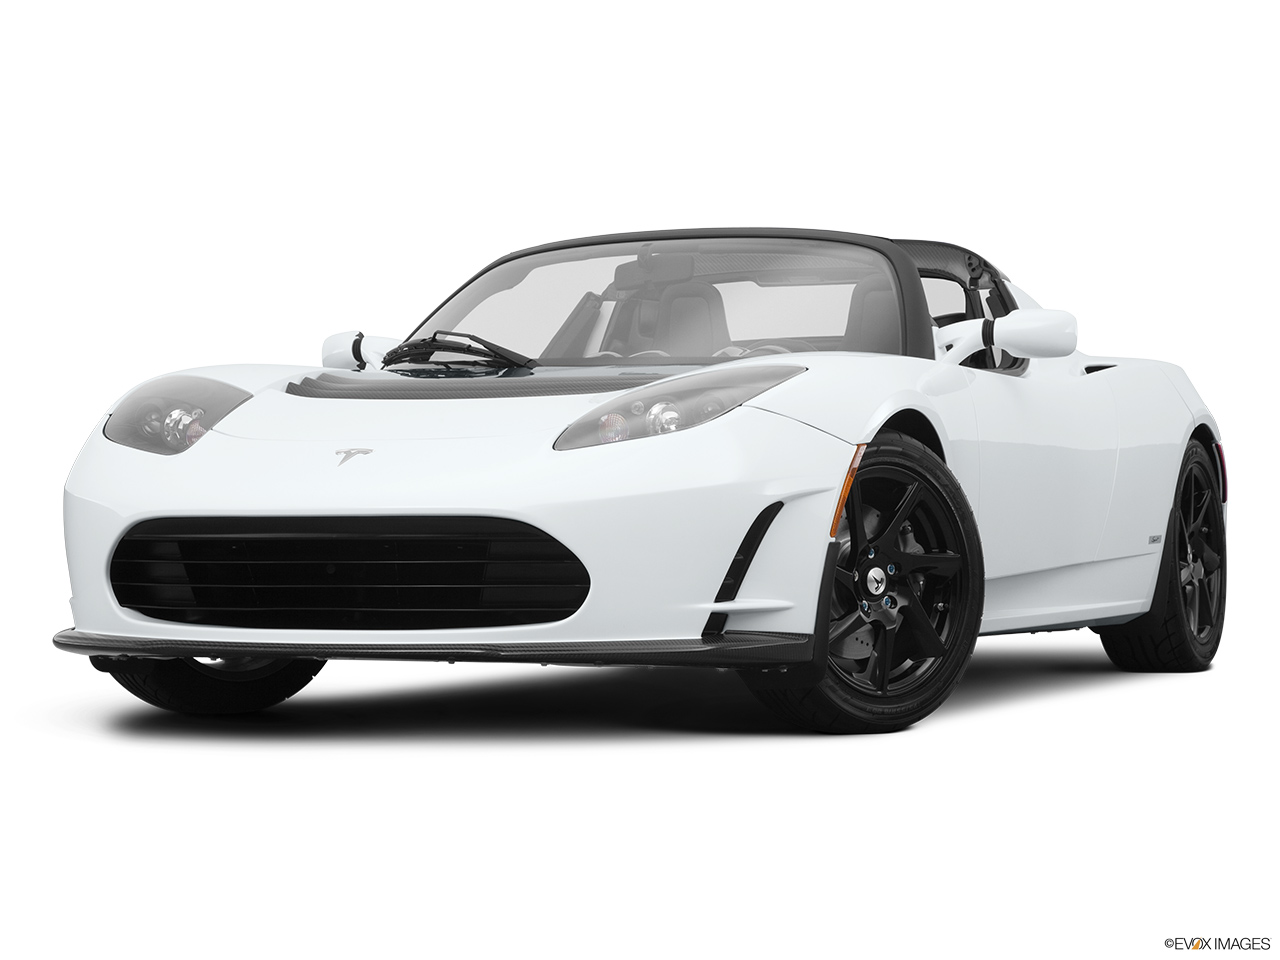 2010 Tesla Roadster sport Front angle view, low wide perspective.